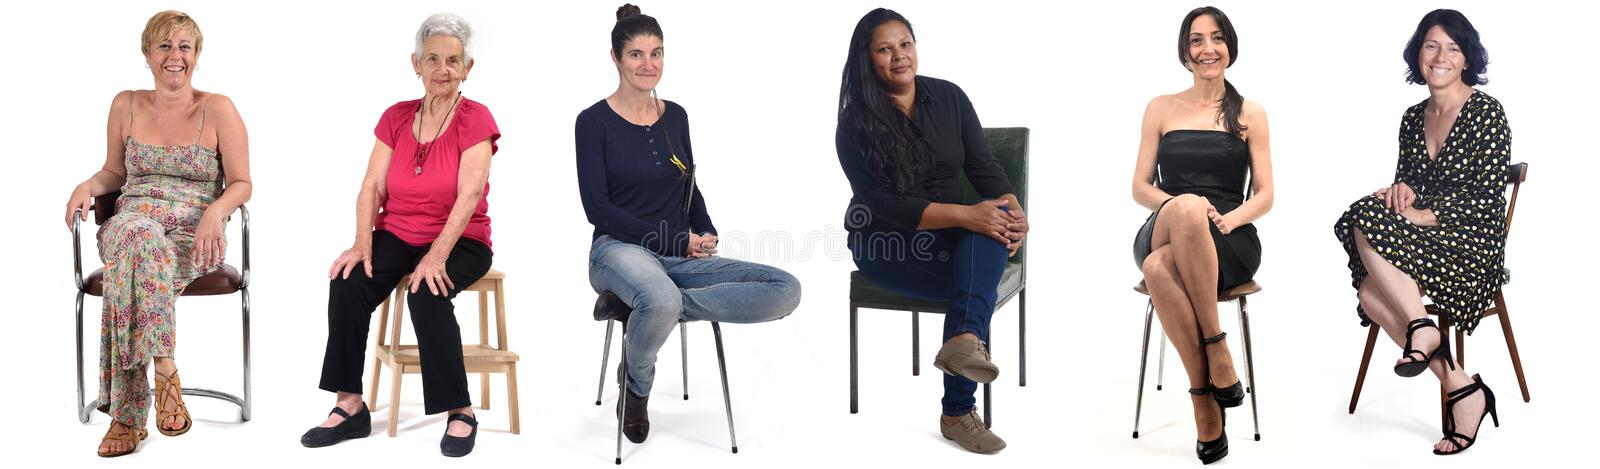 Group of women sitting on chair on white background stock images